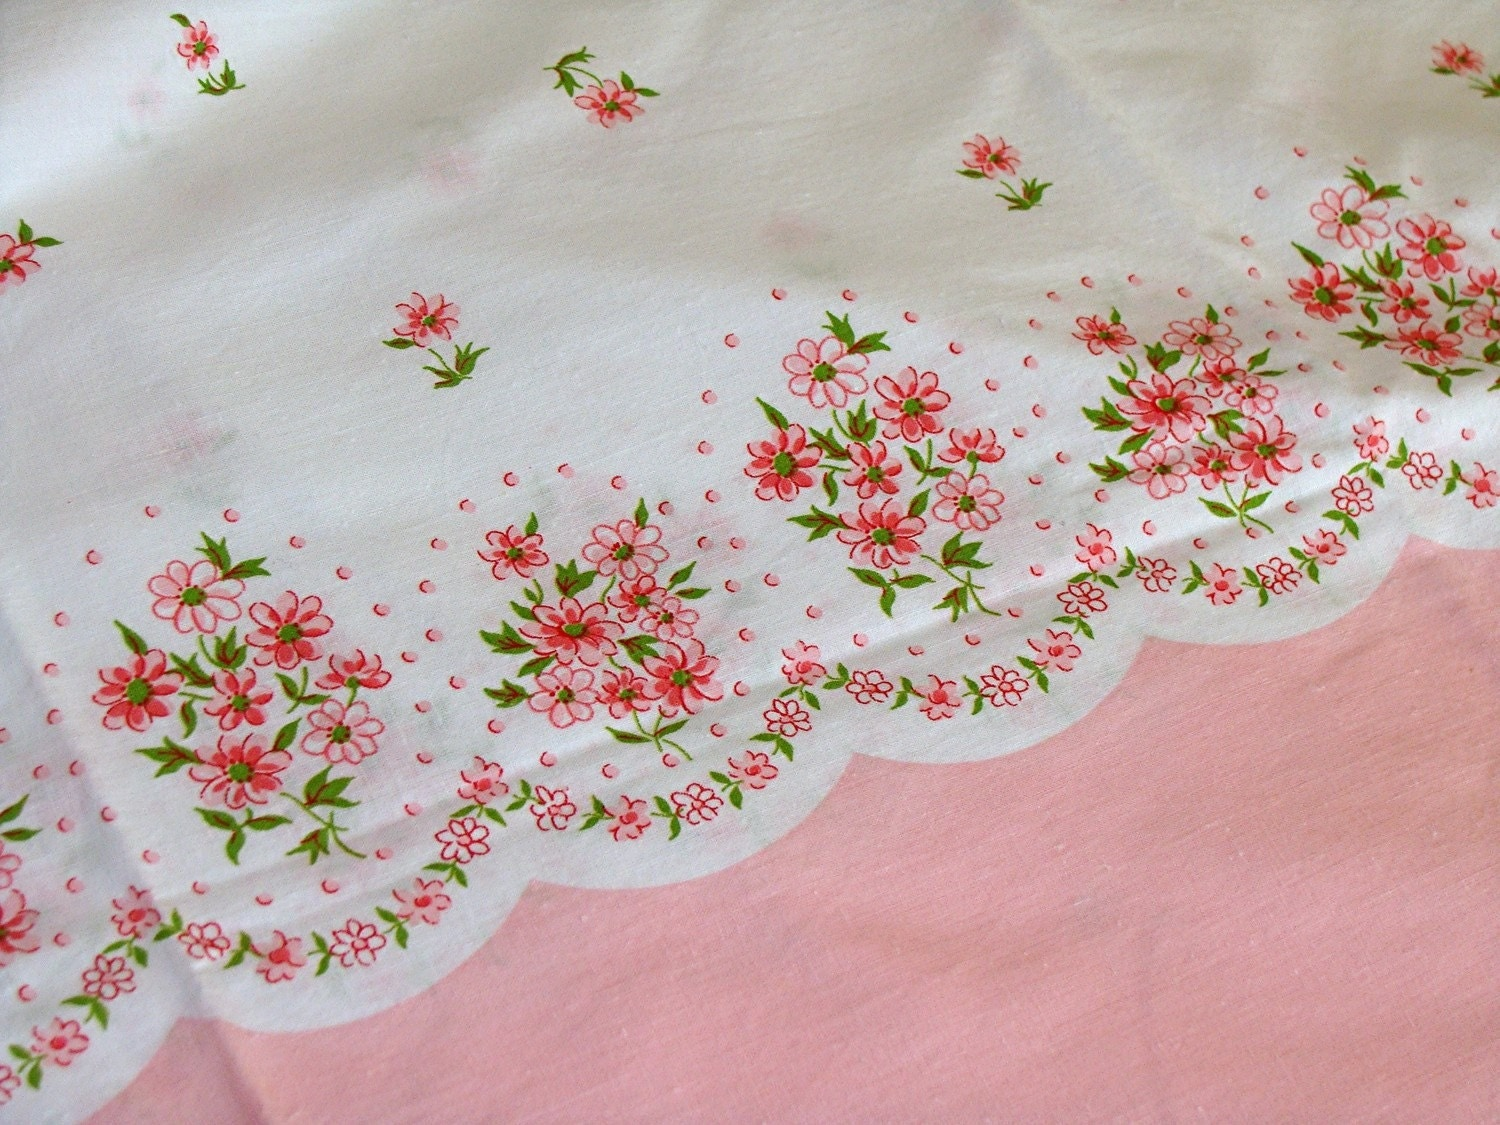 Vintage Cotton Full Feedsack Border Print fabric - little pink daisy flowers on white